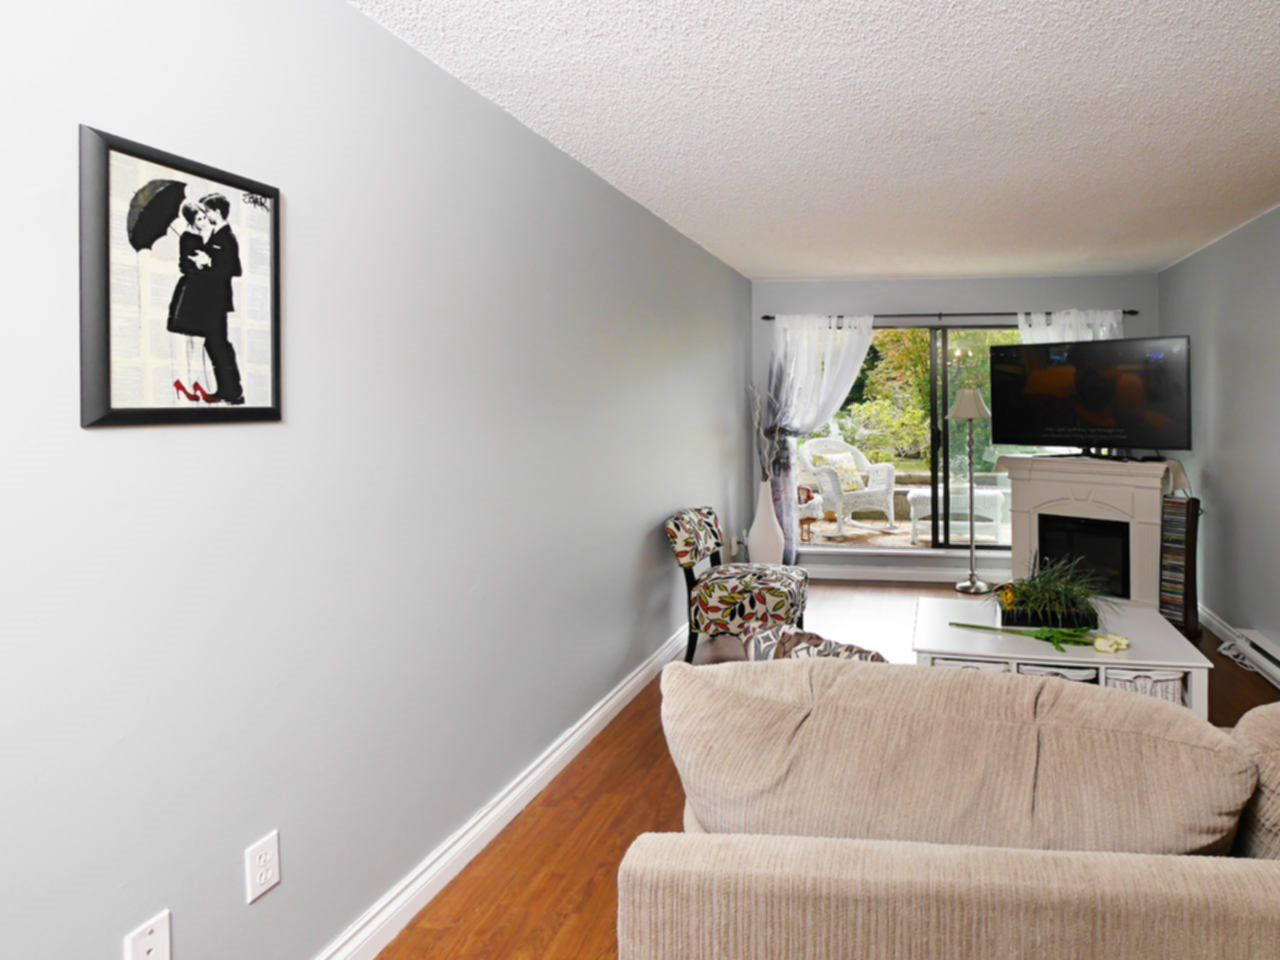 """Photo 8: Photos: 105 9952 149 Street in Surrey: Guildford Condo for sale in """"Tall Timbers"""" (North Surrey)  : MLS®# R2107429"""